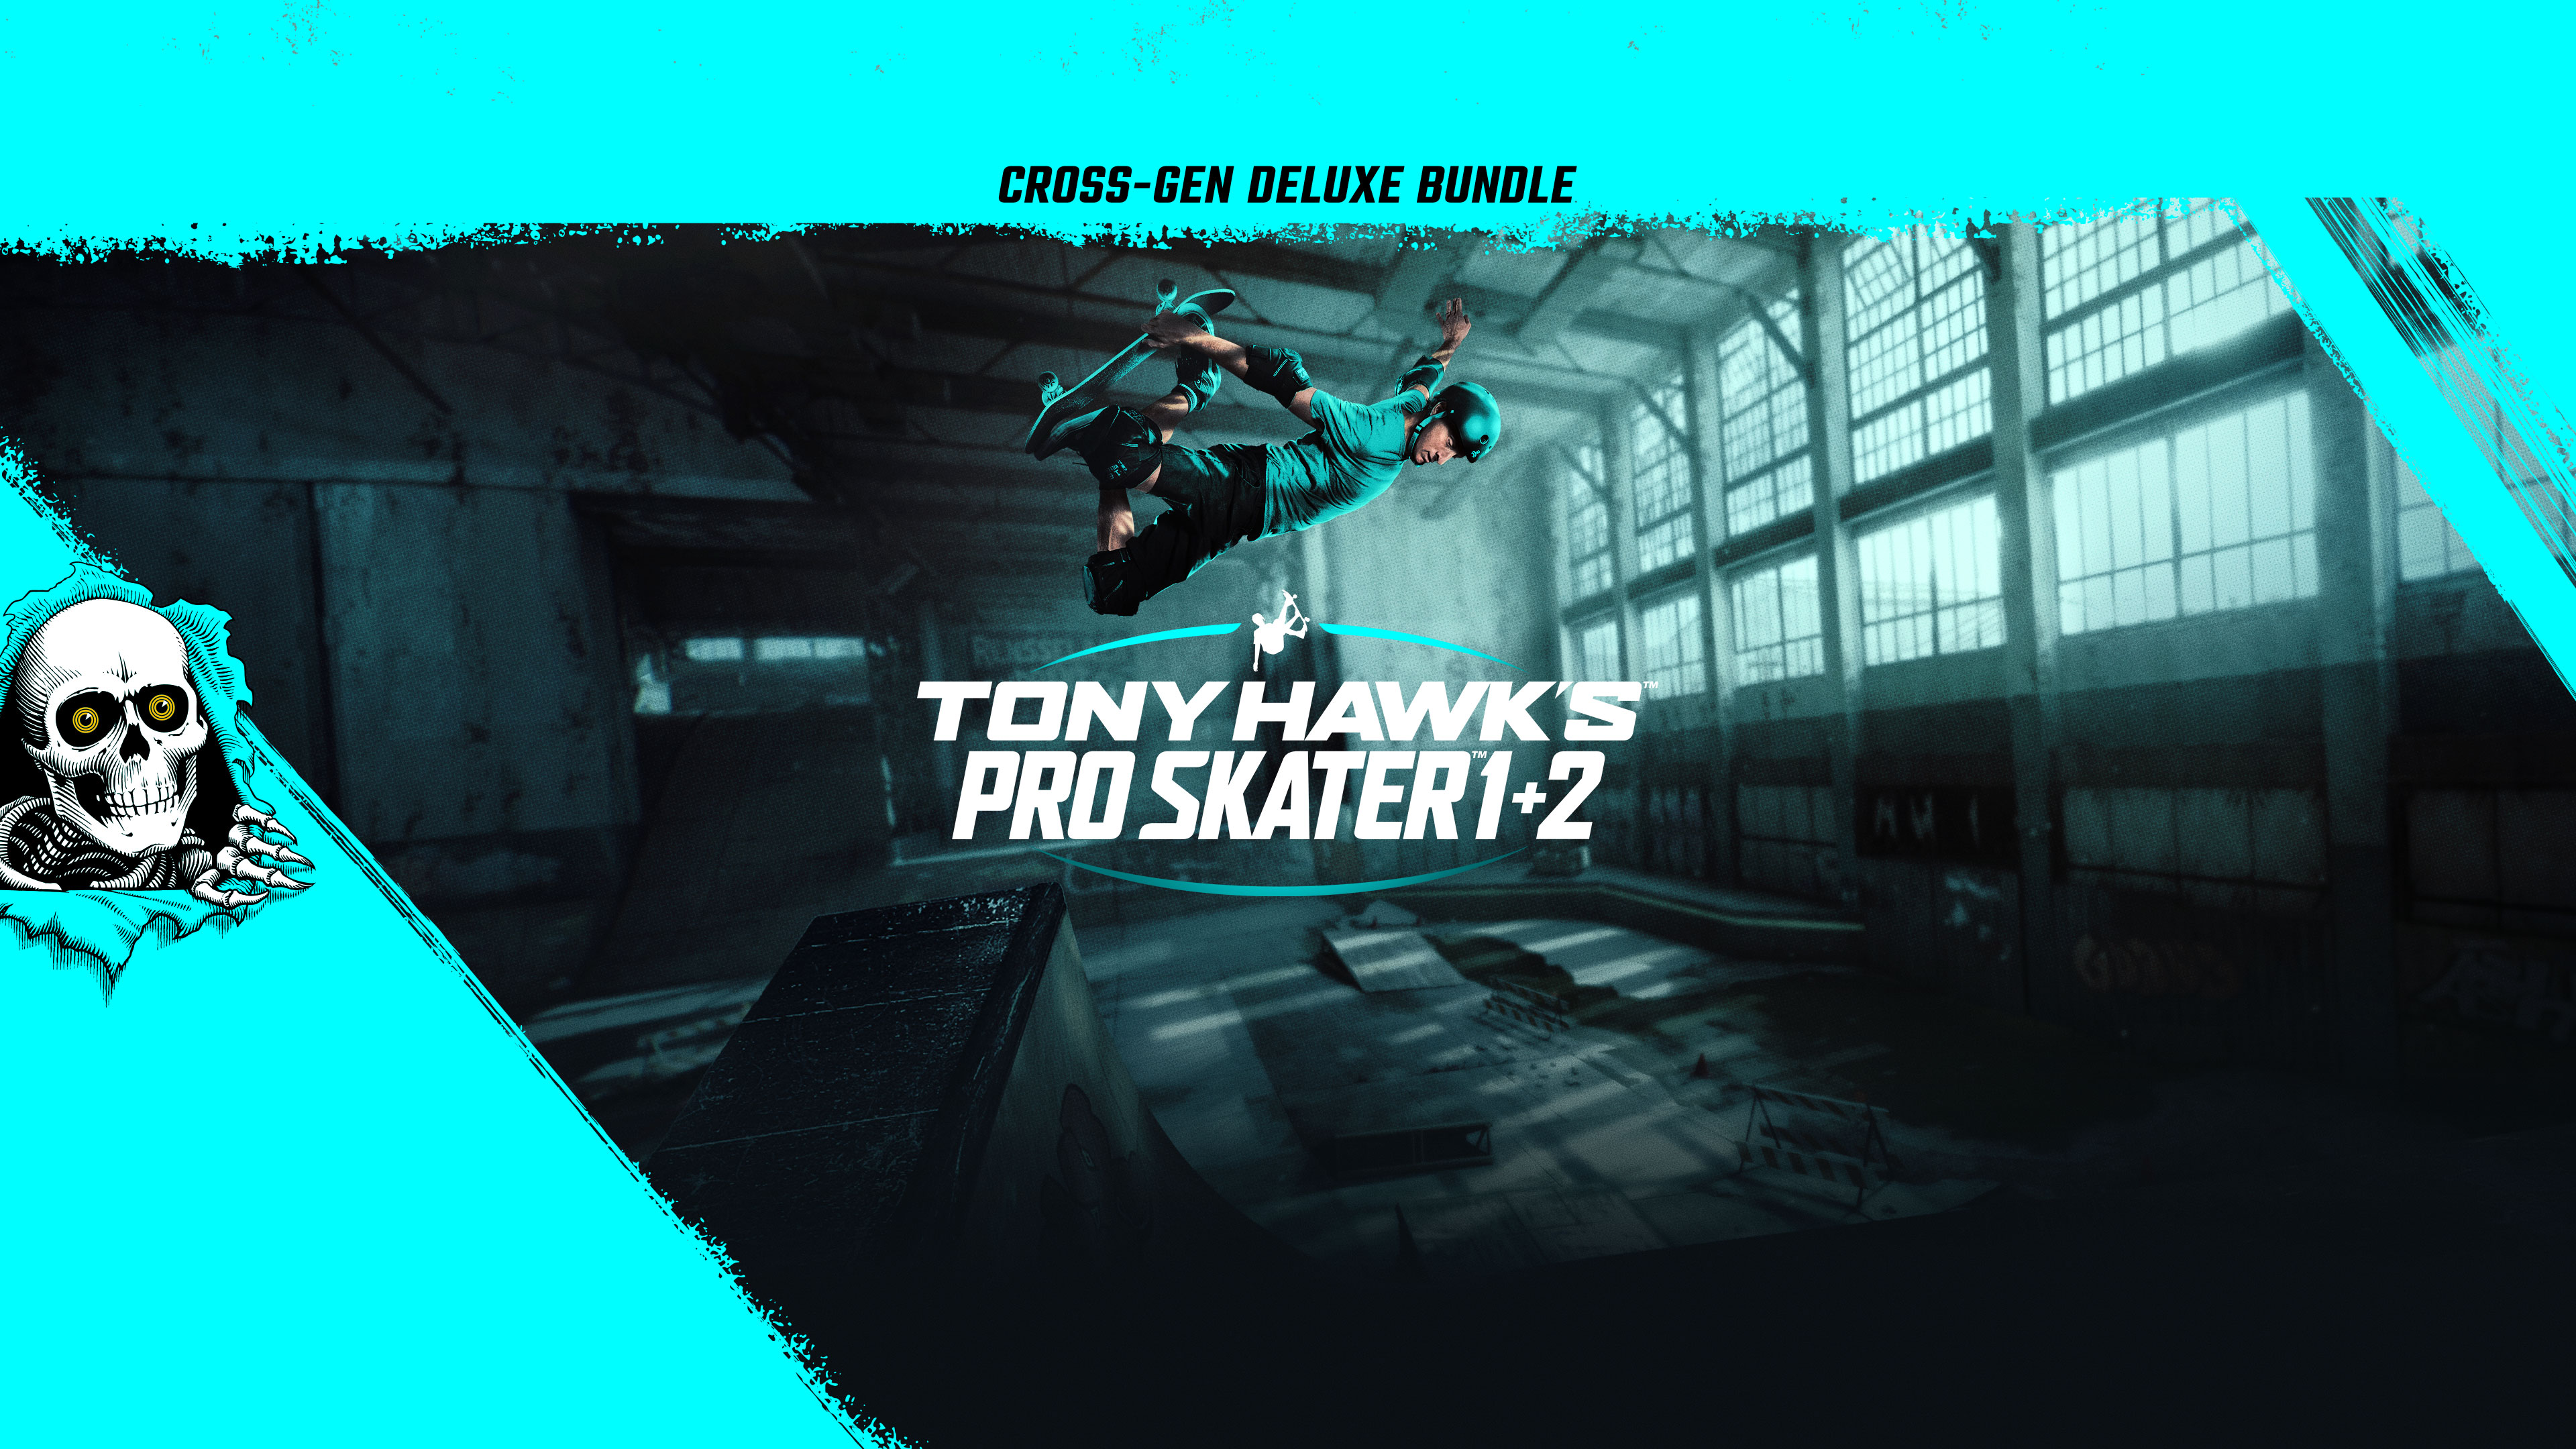 Tony Hawk's™ Pro Skater™ 1 + 2 - Pack Cross-gen Deluxe